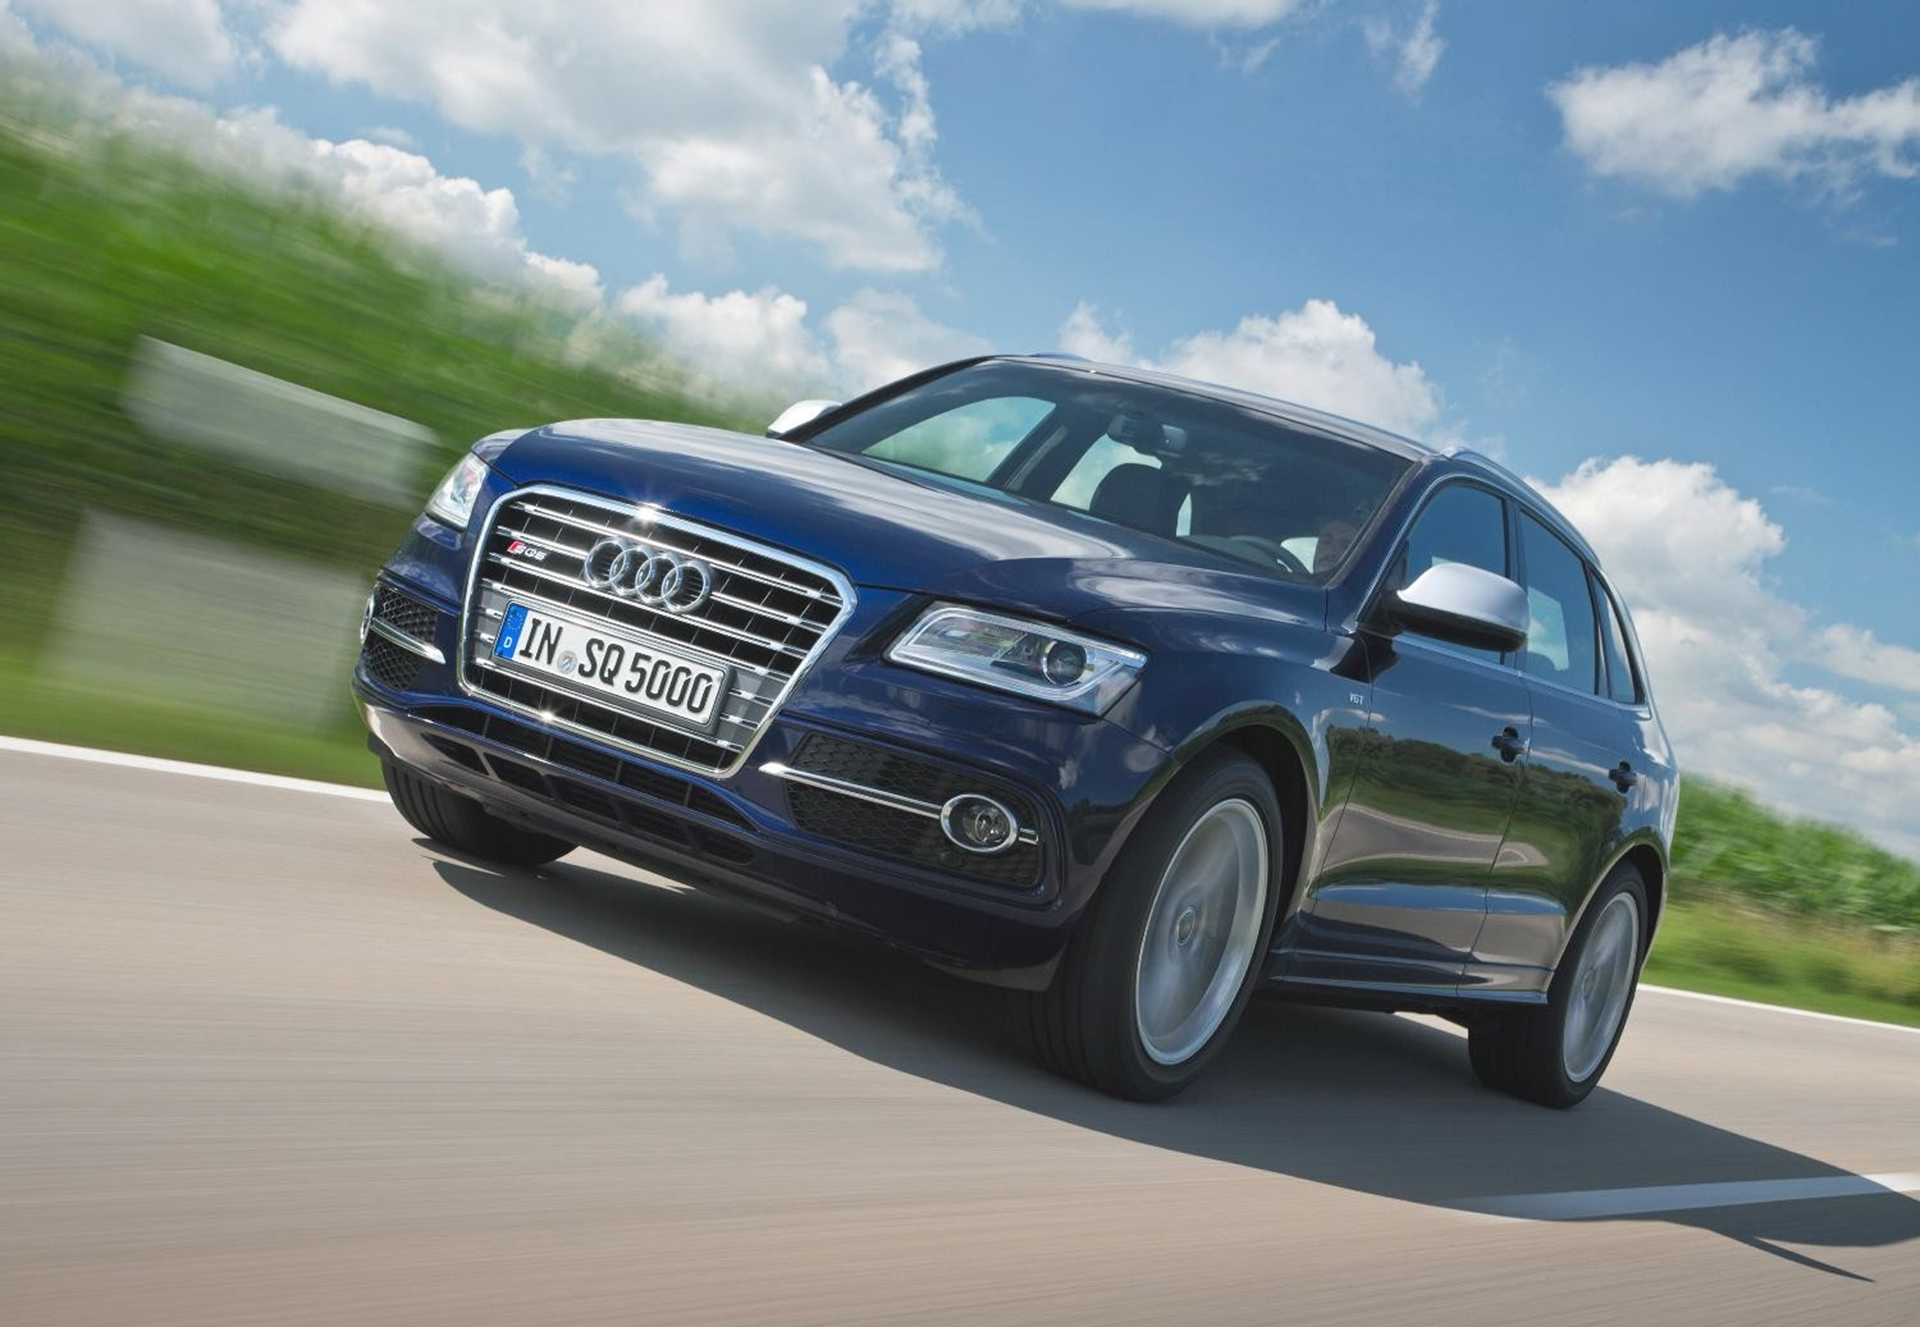 audi sq5 tdi ready to join uk range as first ever diesel s model. Black Bedroom Furniture Sets. Home Design Ideas